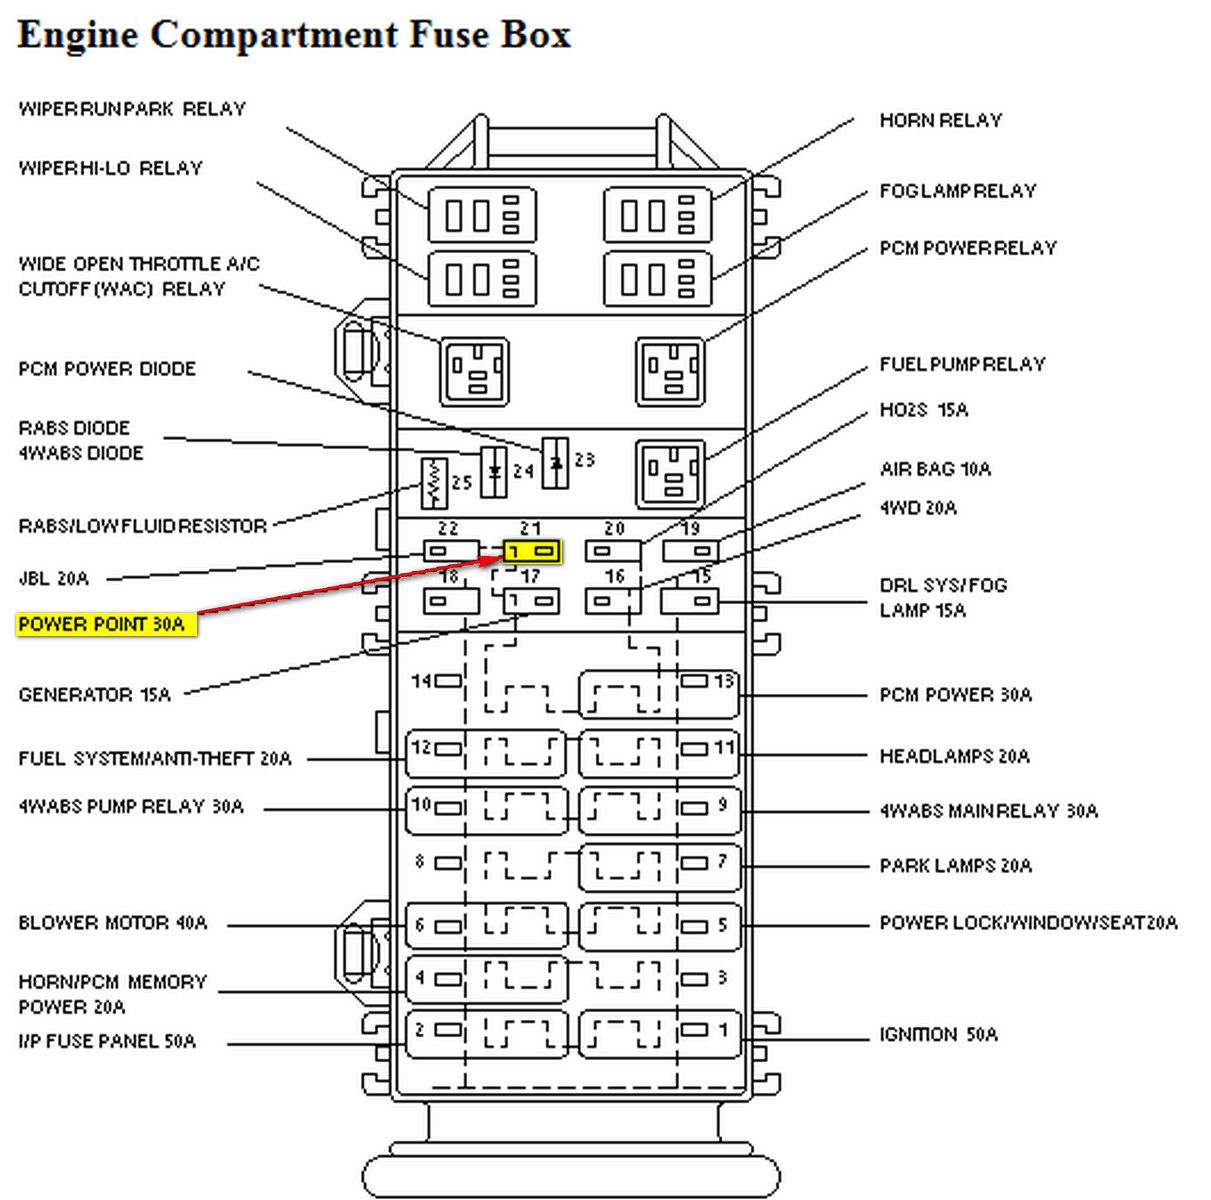 medium resolution of wrg 4838 2002 ford f 150 fx4 fuse panel diagram 94 lincoln town car fuse diagram